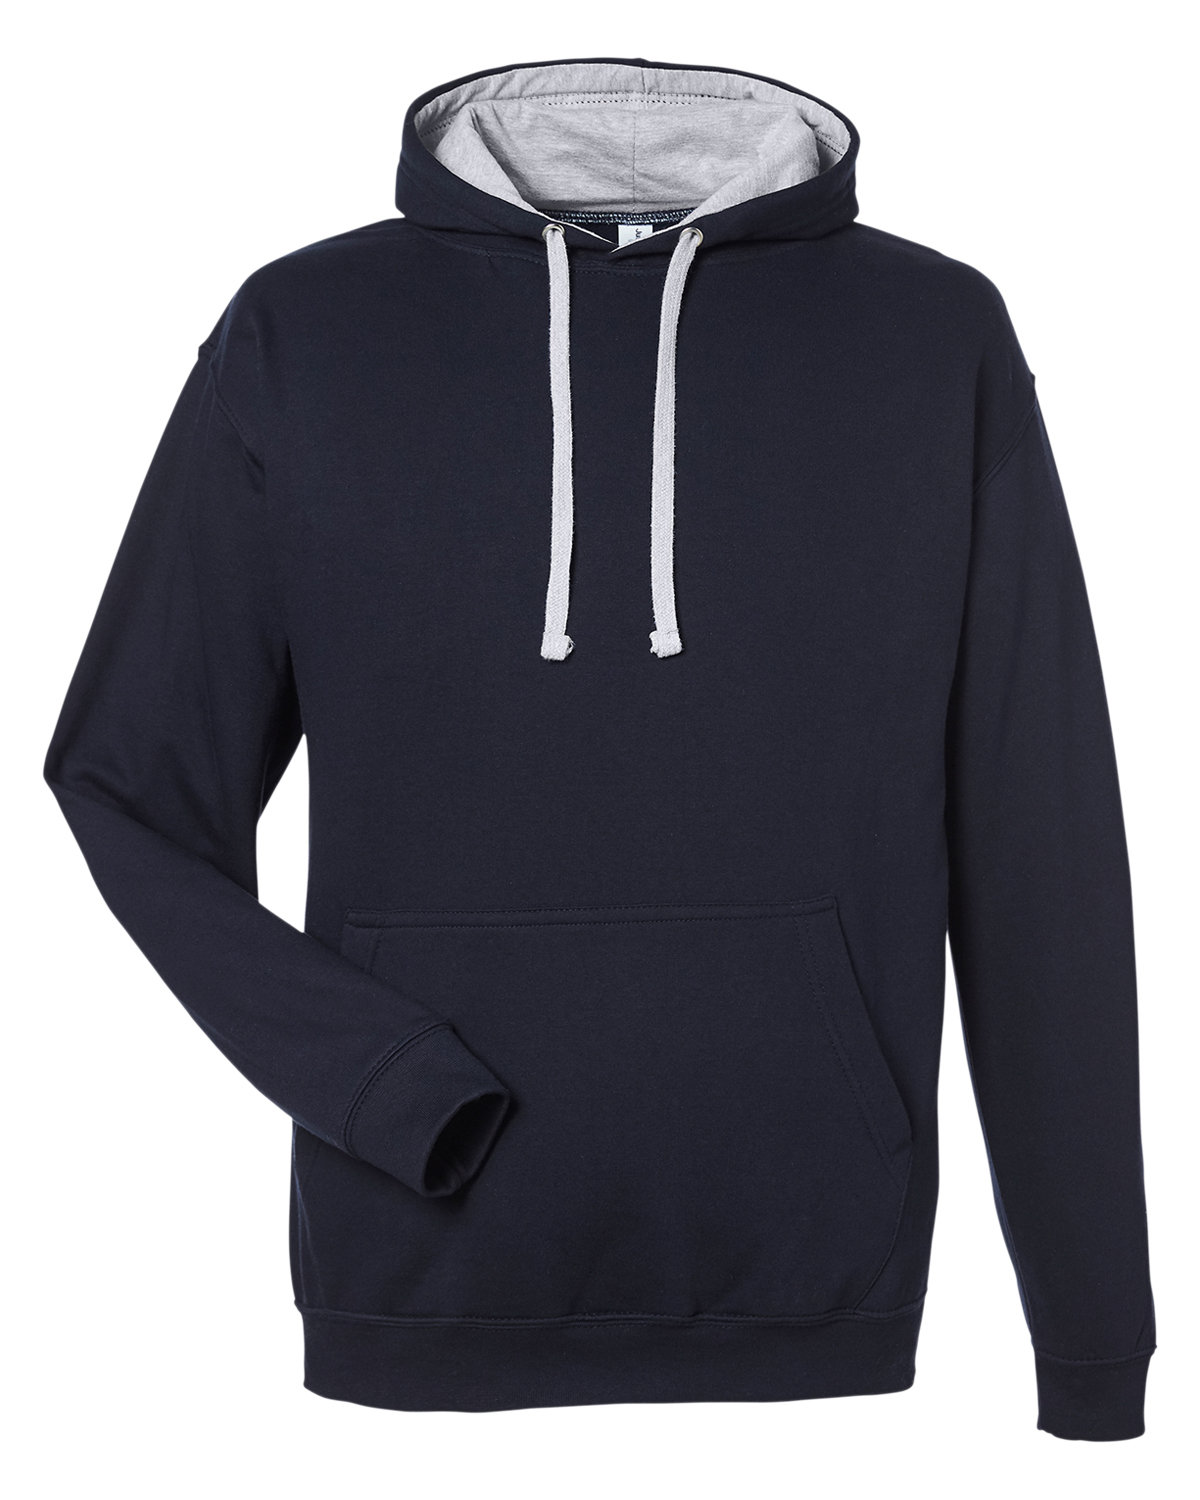 Just Hoods By AWDis Adult 80/20 Midweight Varsity Contrast Hooded Sweatshirt FRN NVY /HTH GRY